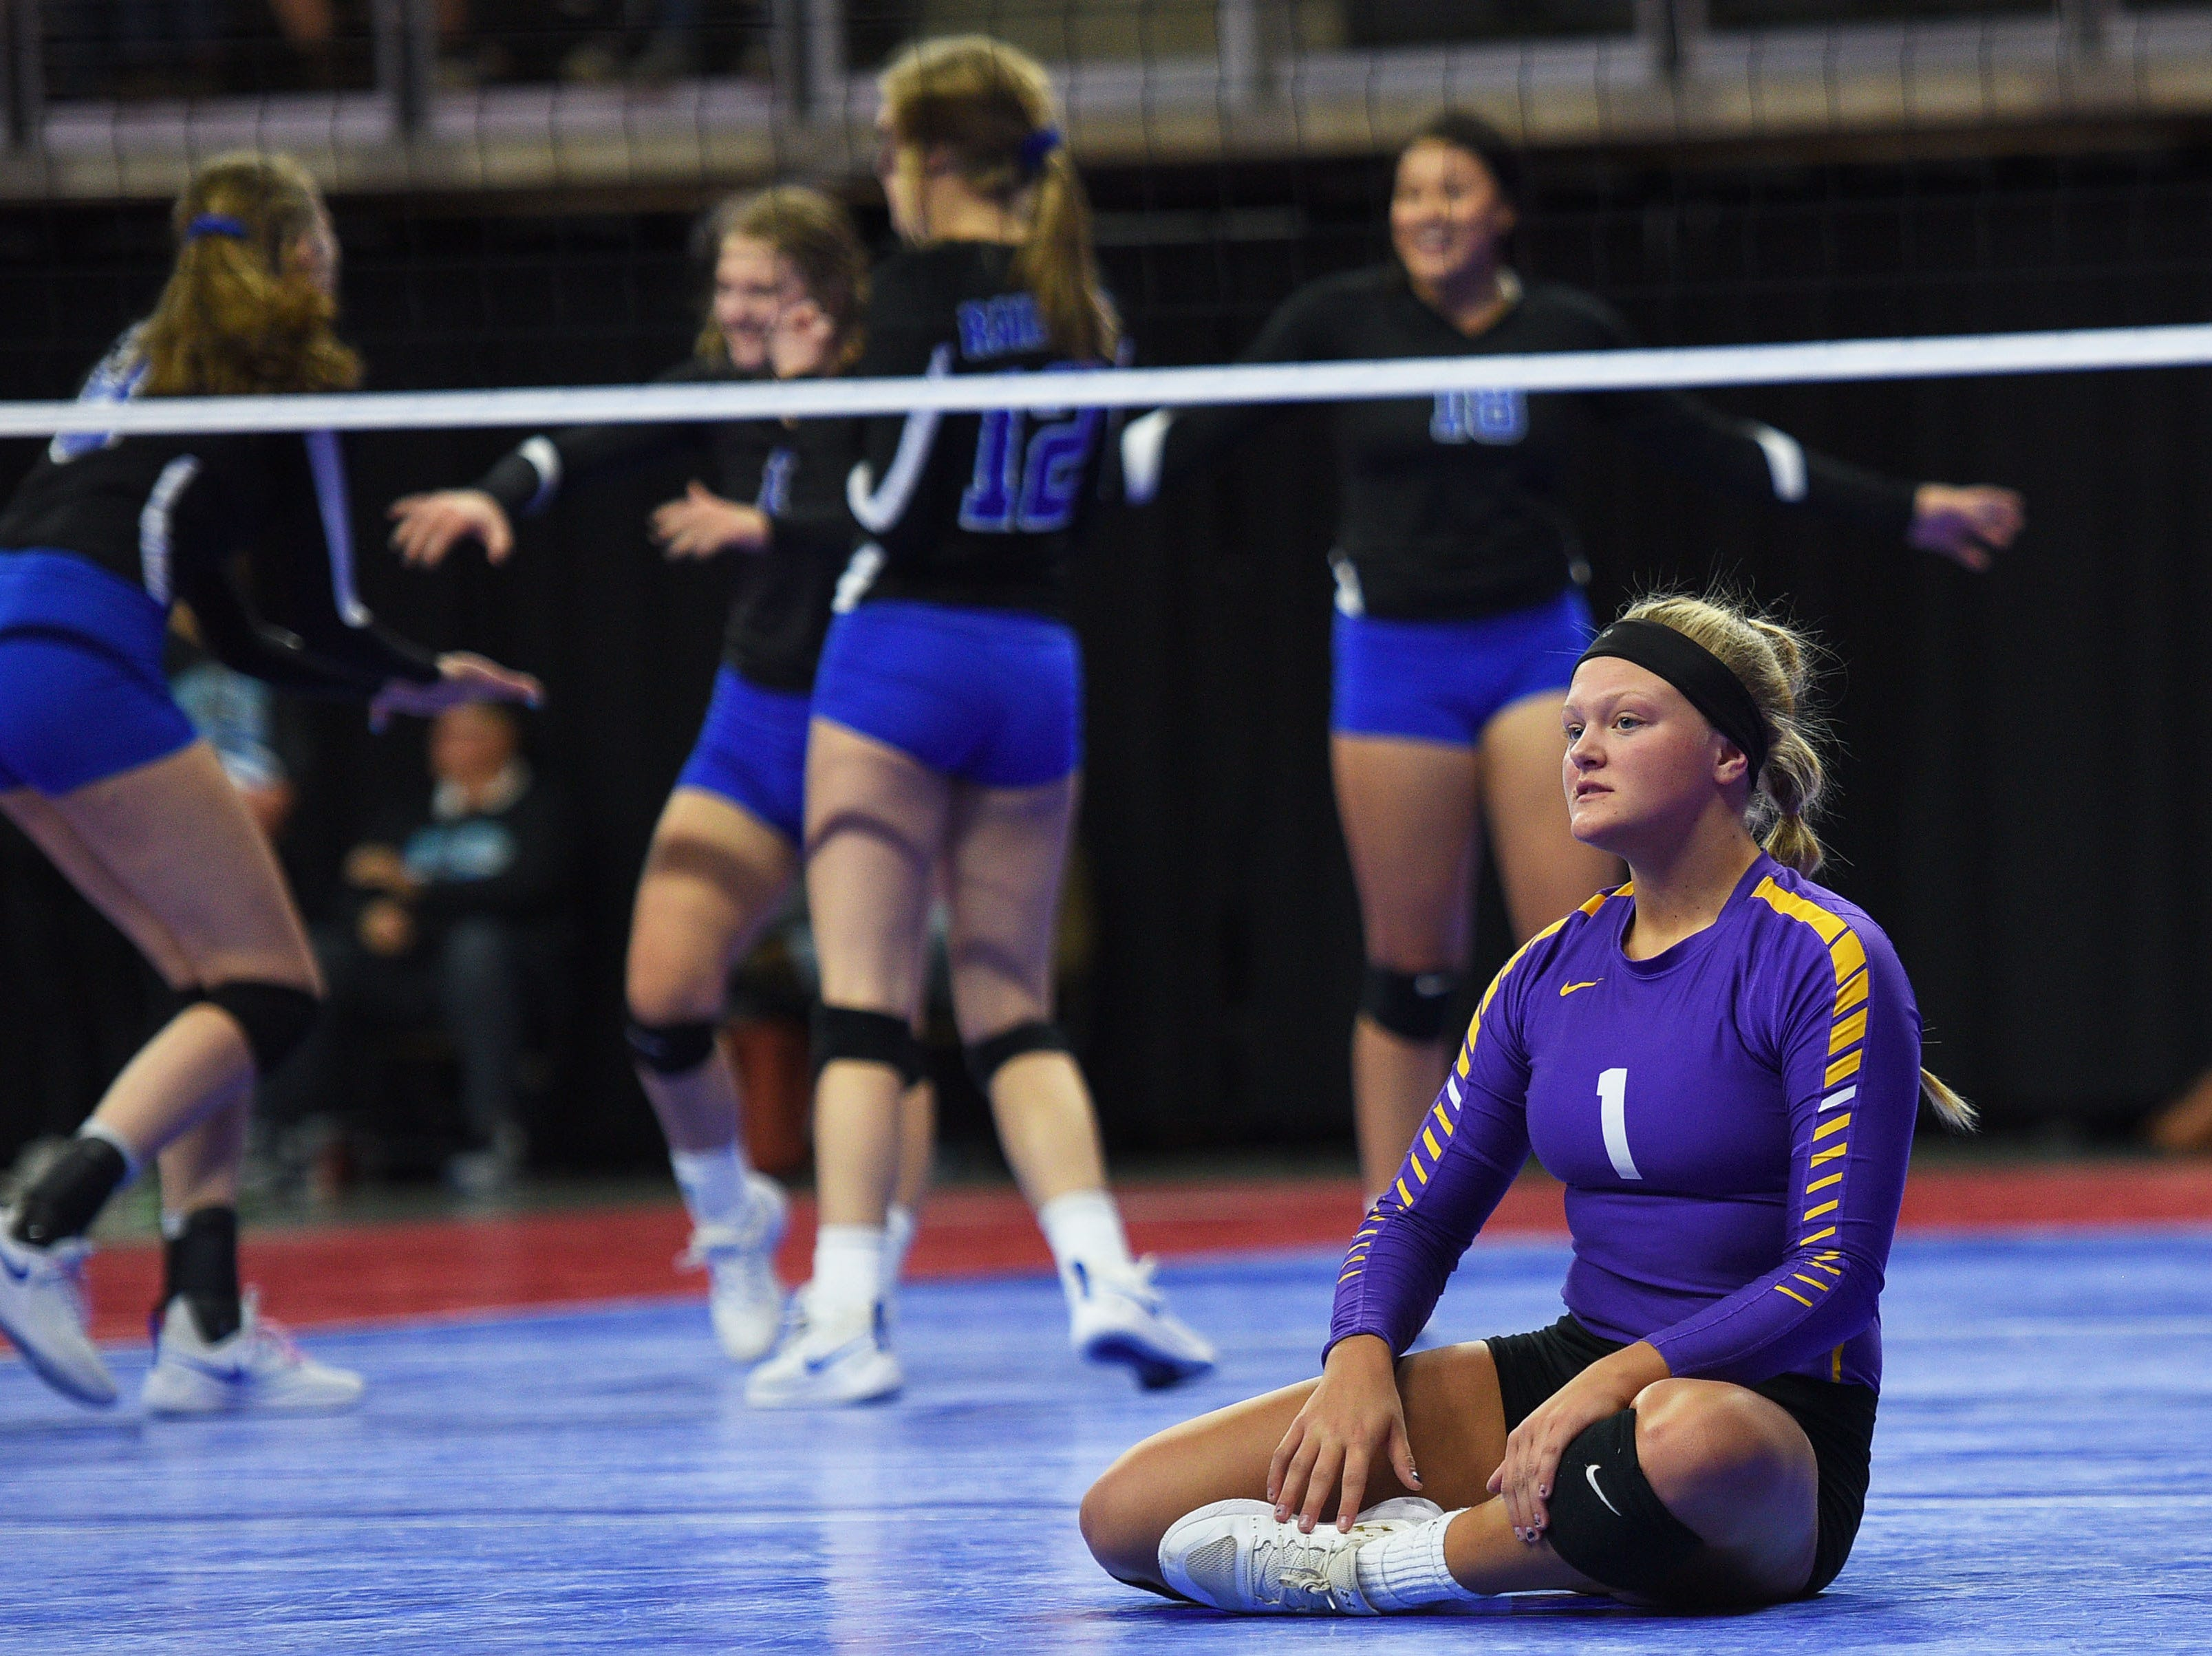 Watertown's Annie Norberg during the semifinals Friday, Nov. 16, at the Denny Sanford Premier Center in Sioux Falls.